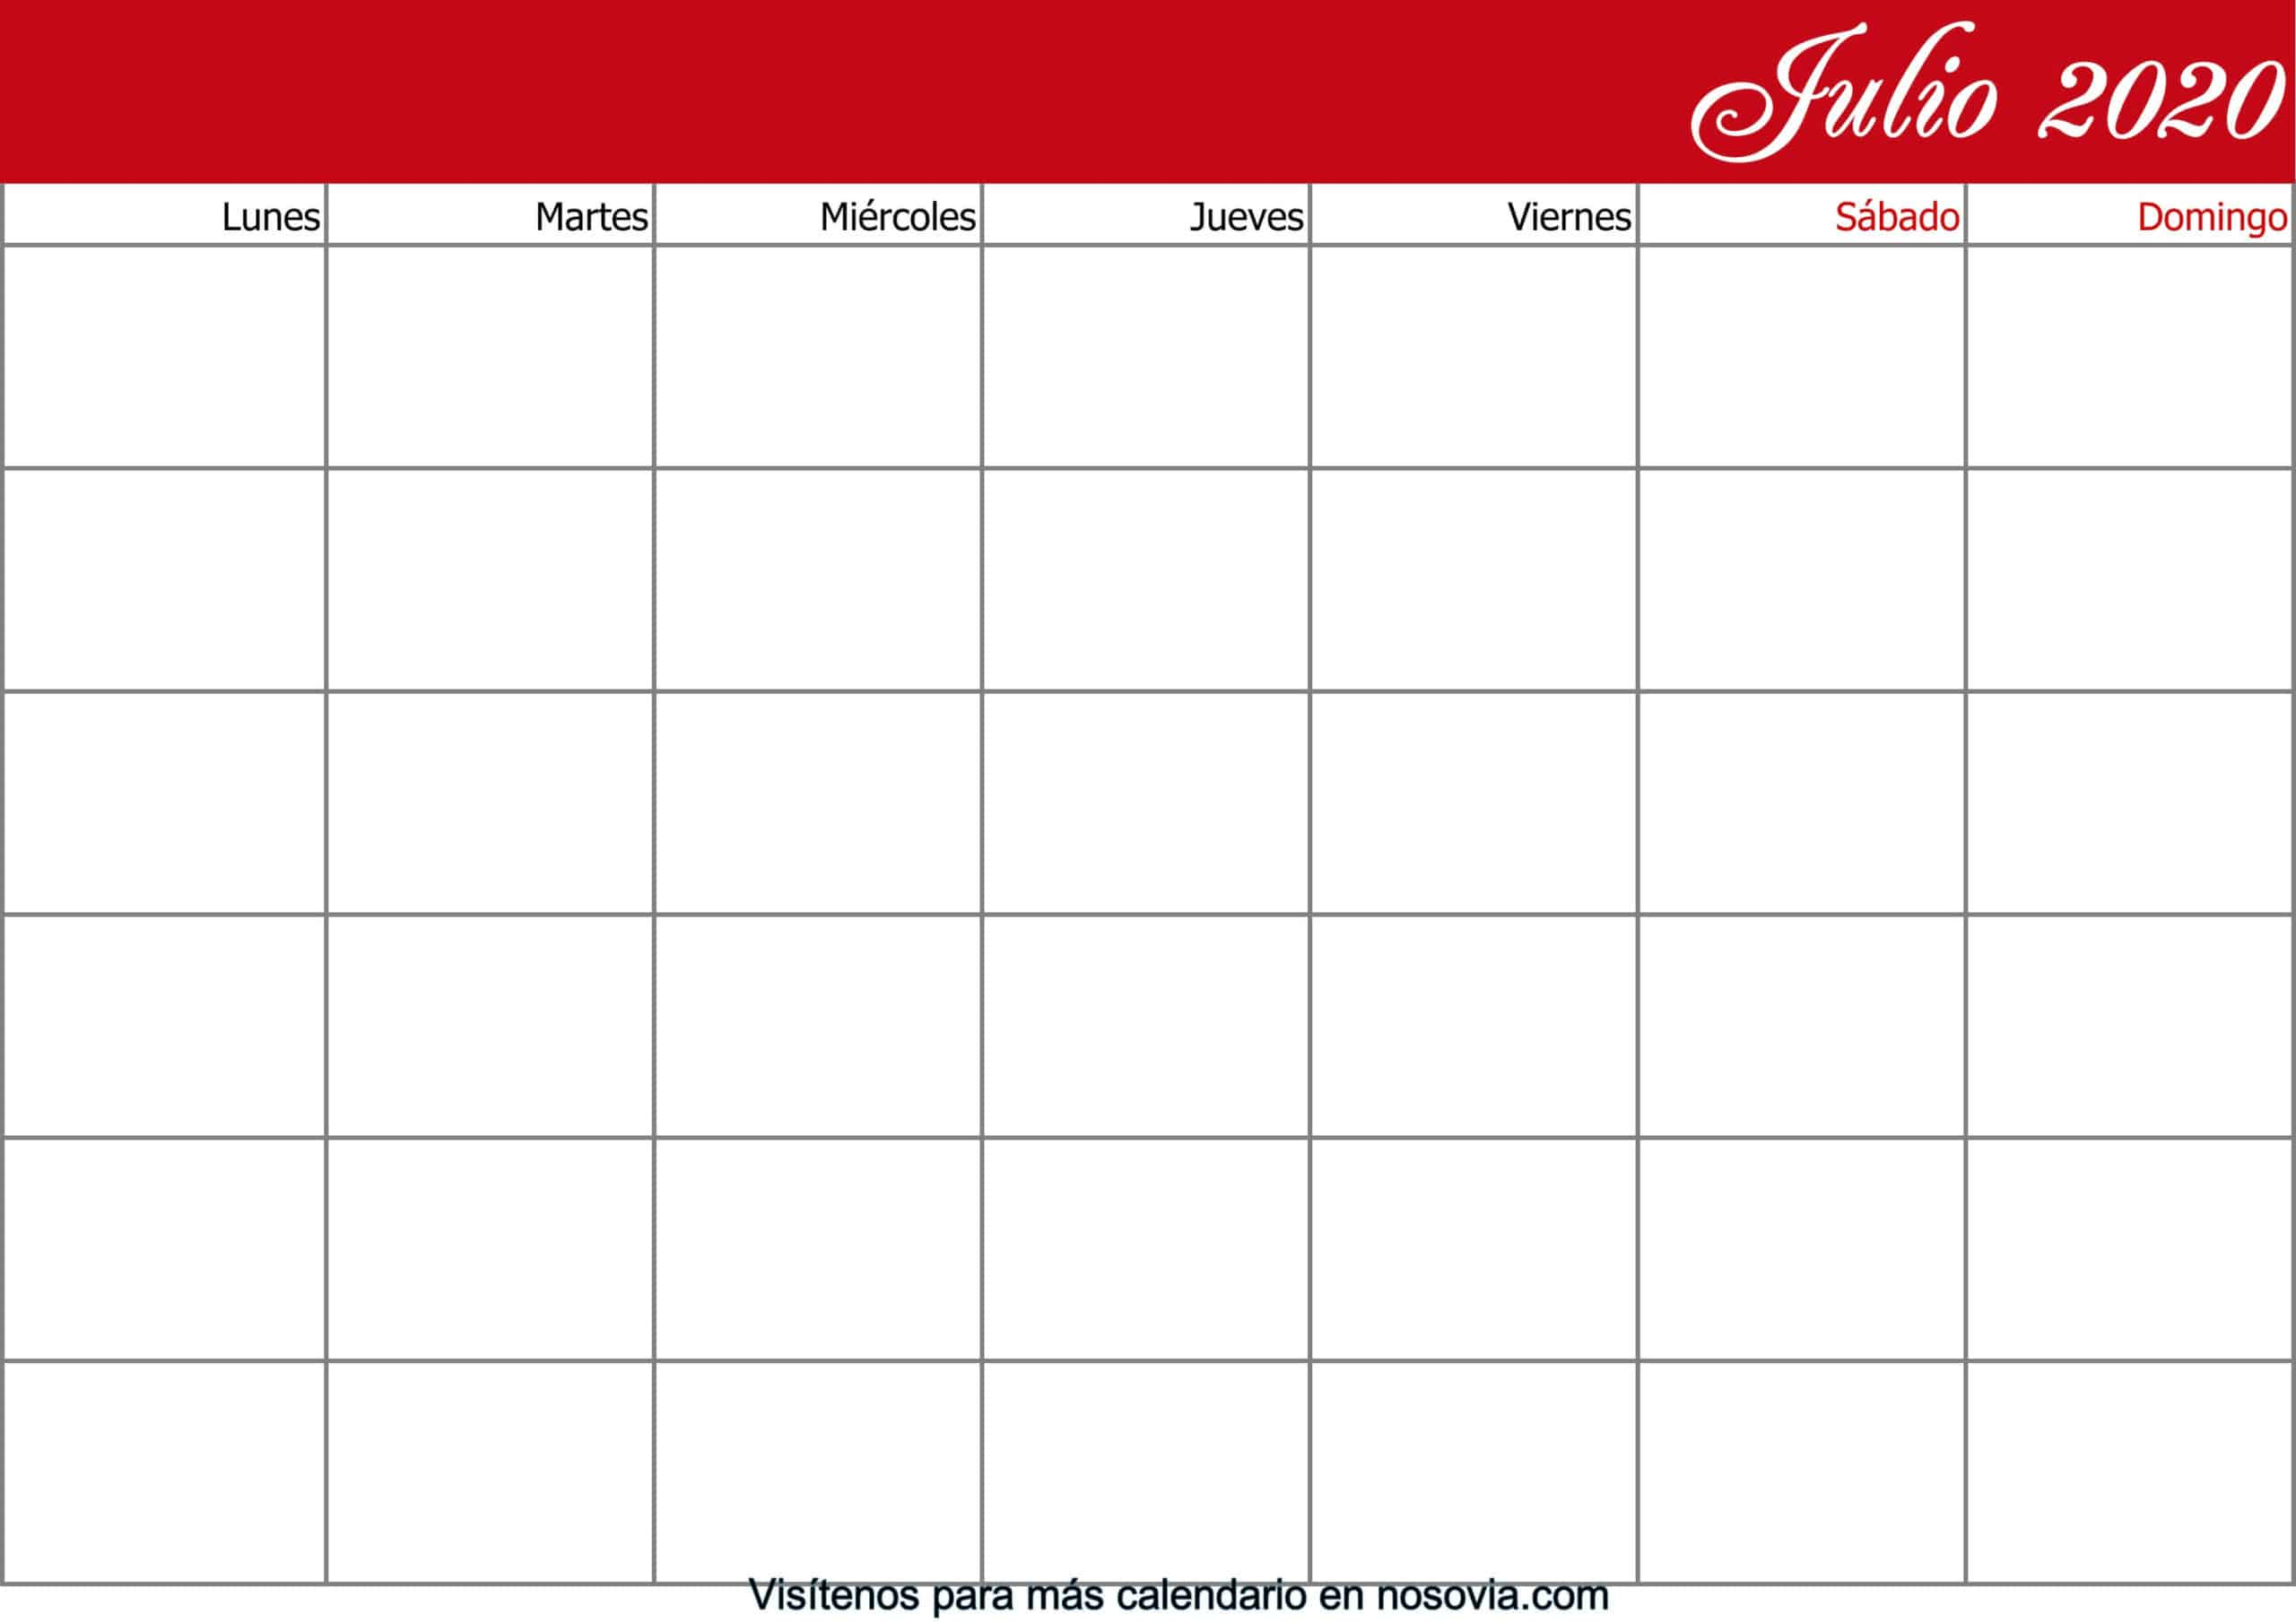 Calendario-julio-2020-en-blanco-imprimible-gratis